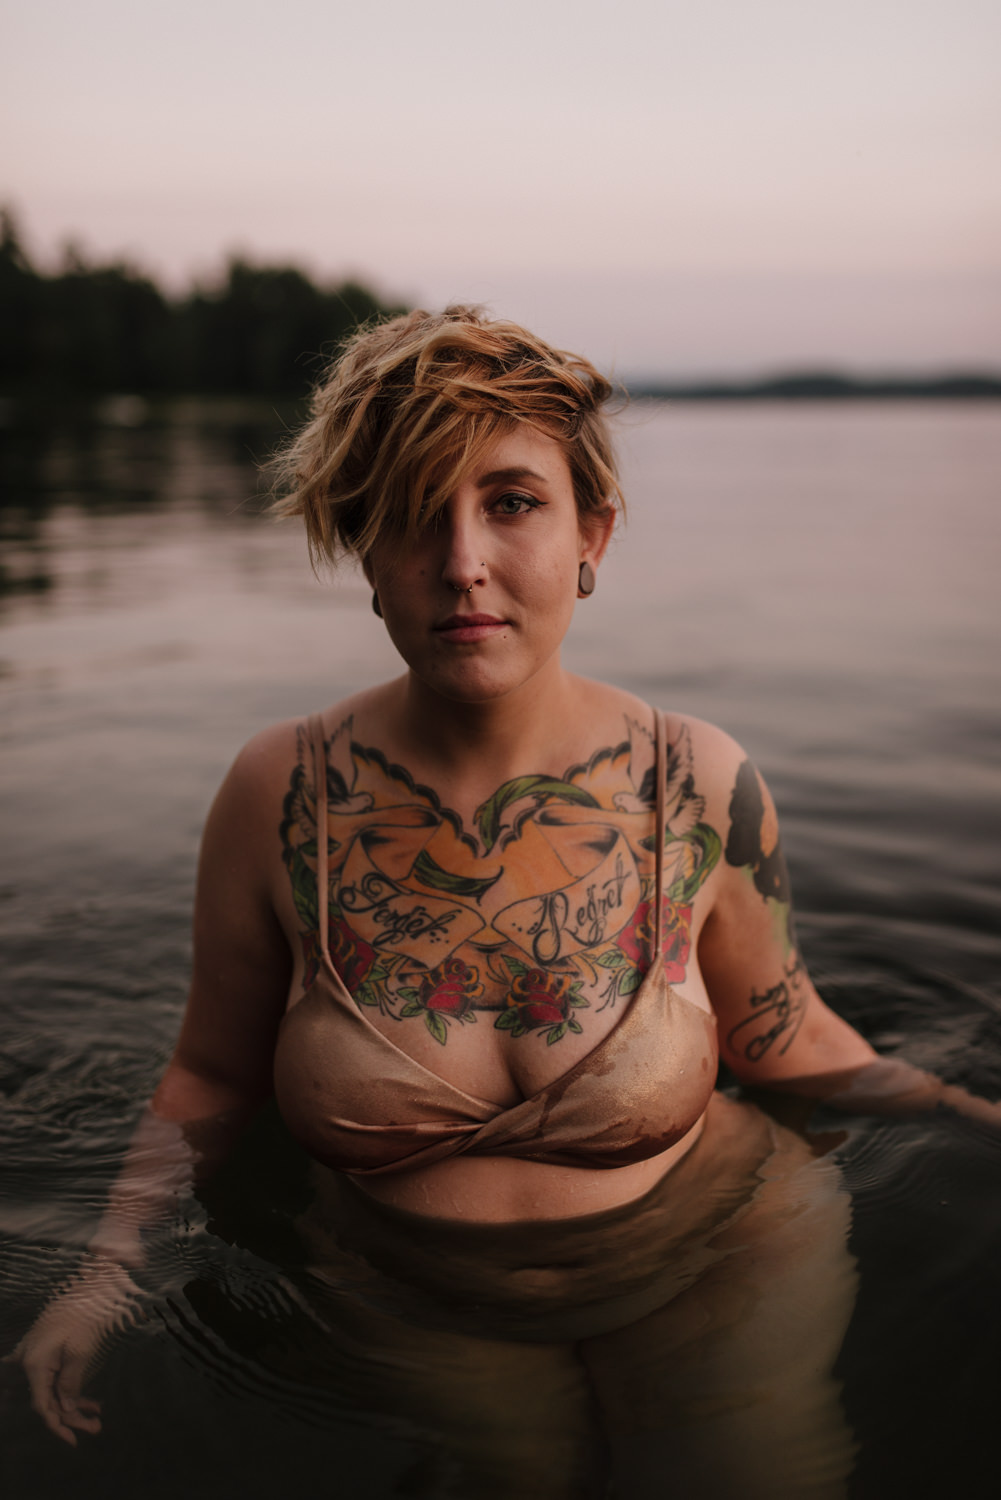 water-boudoir-vermont-portrait-©Elisabeth-Waller-Photography